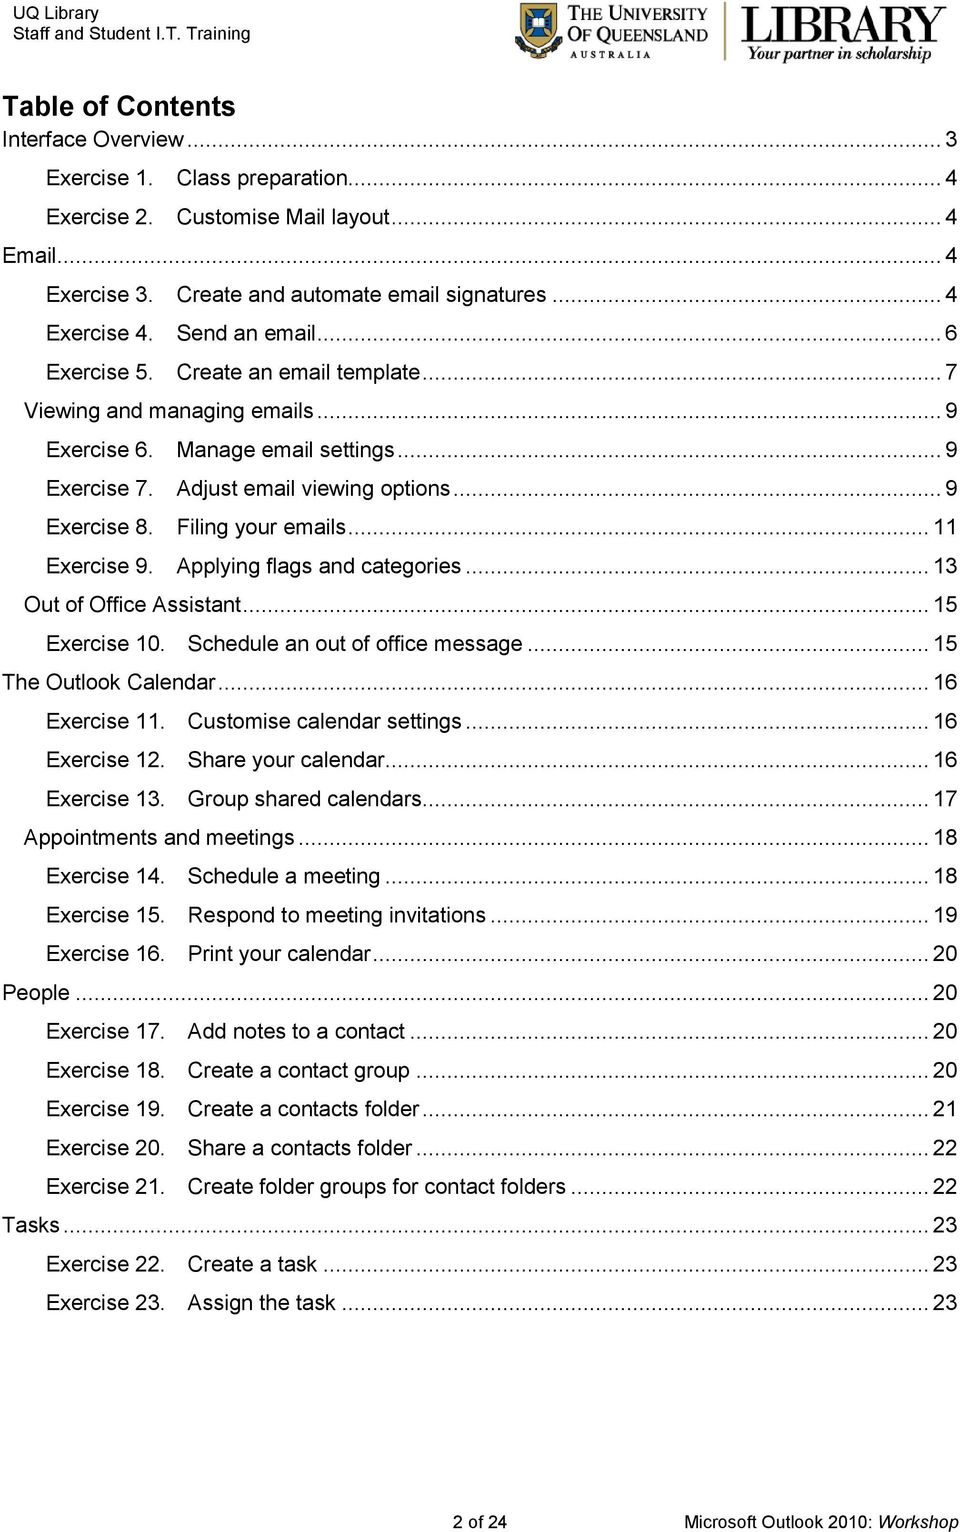 Filing your emails... 11 Exercise 9. Applying flags and categories... 13 Out of Office Assistant... 15 Exercise 10. Schedule an out of office message... 15 The Outlook Calendar... 16 Exercise 11.